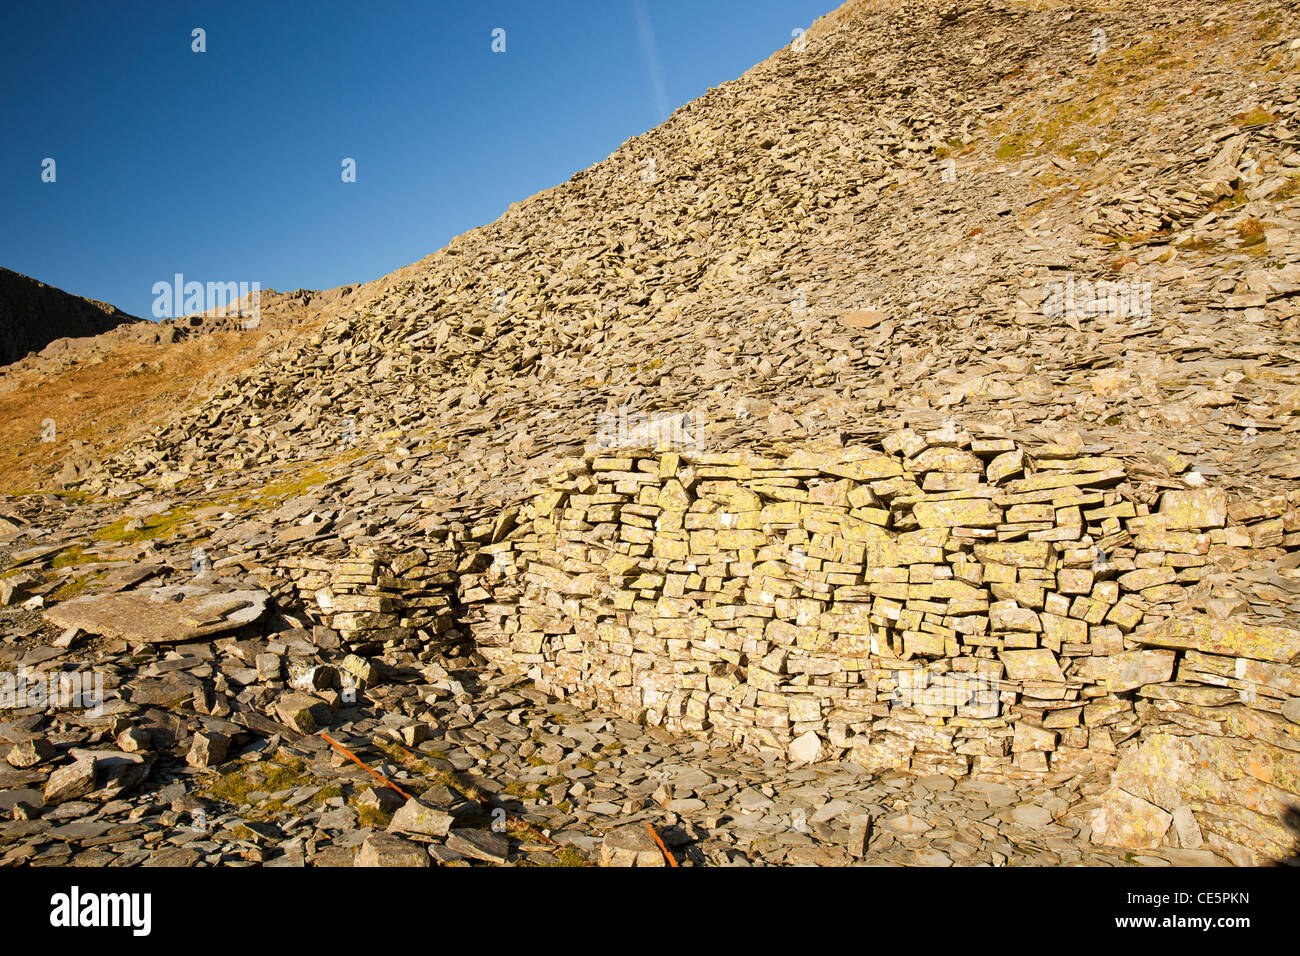 Slate Rock Cliff Stock Photos & Slate Rock Cliff Stock Images - Alamy